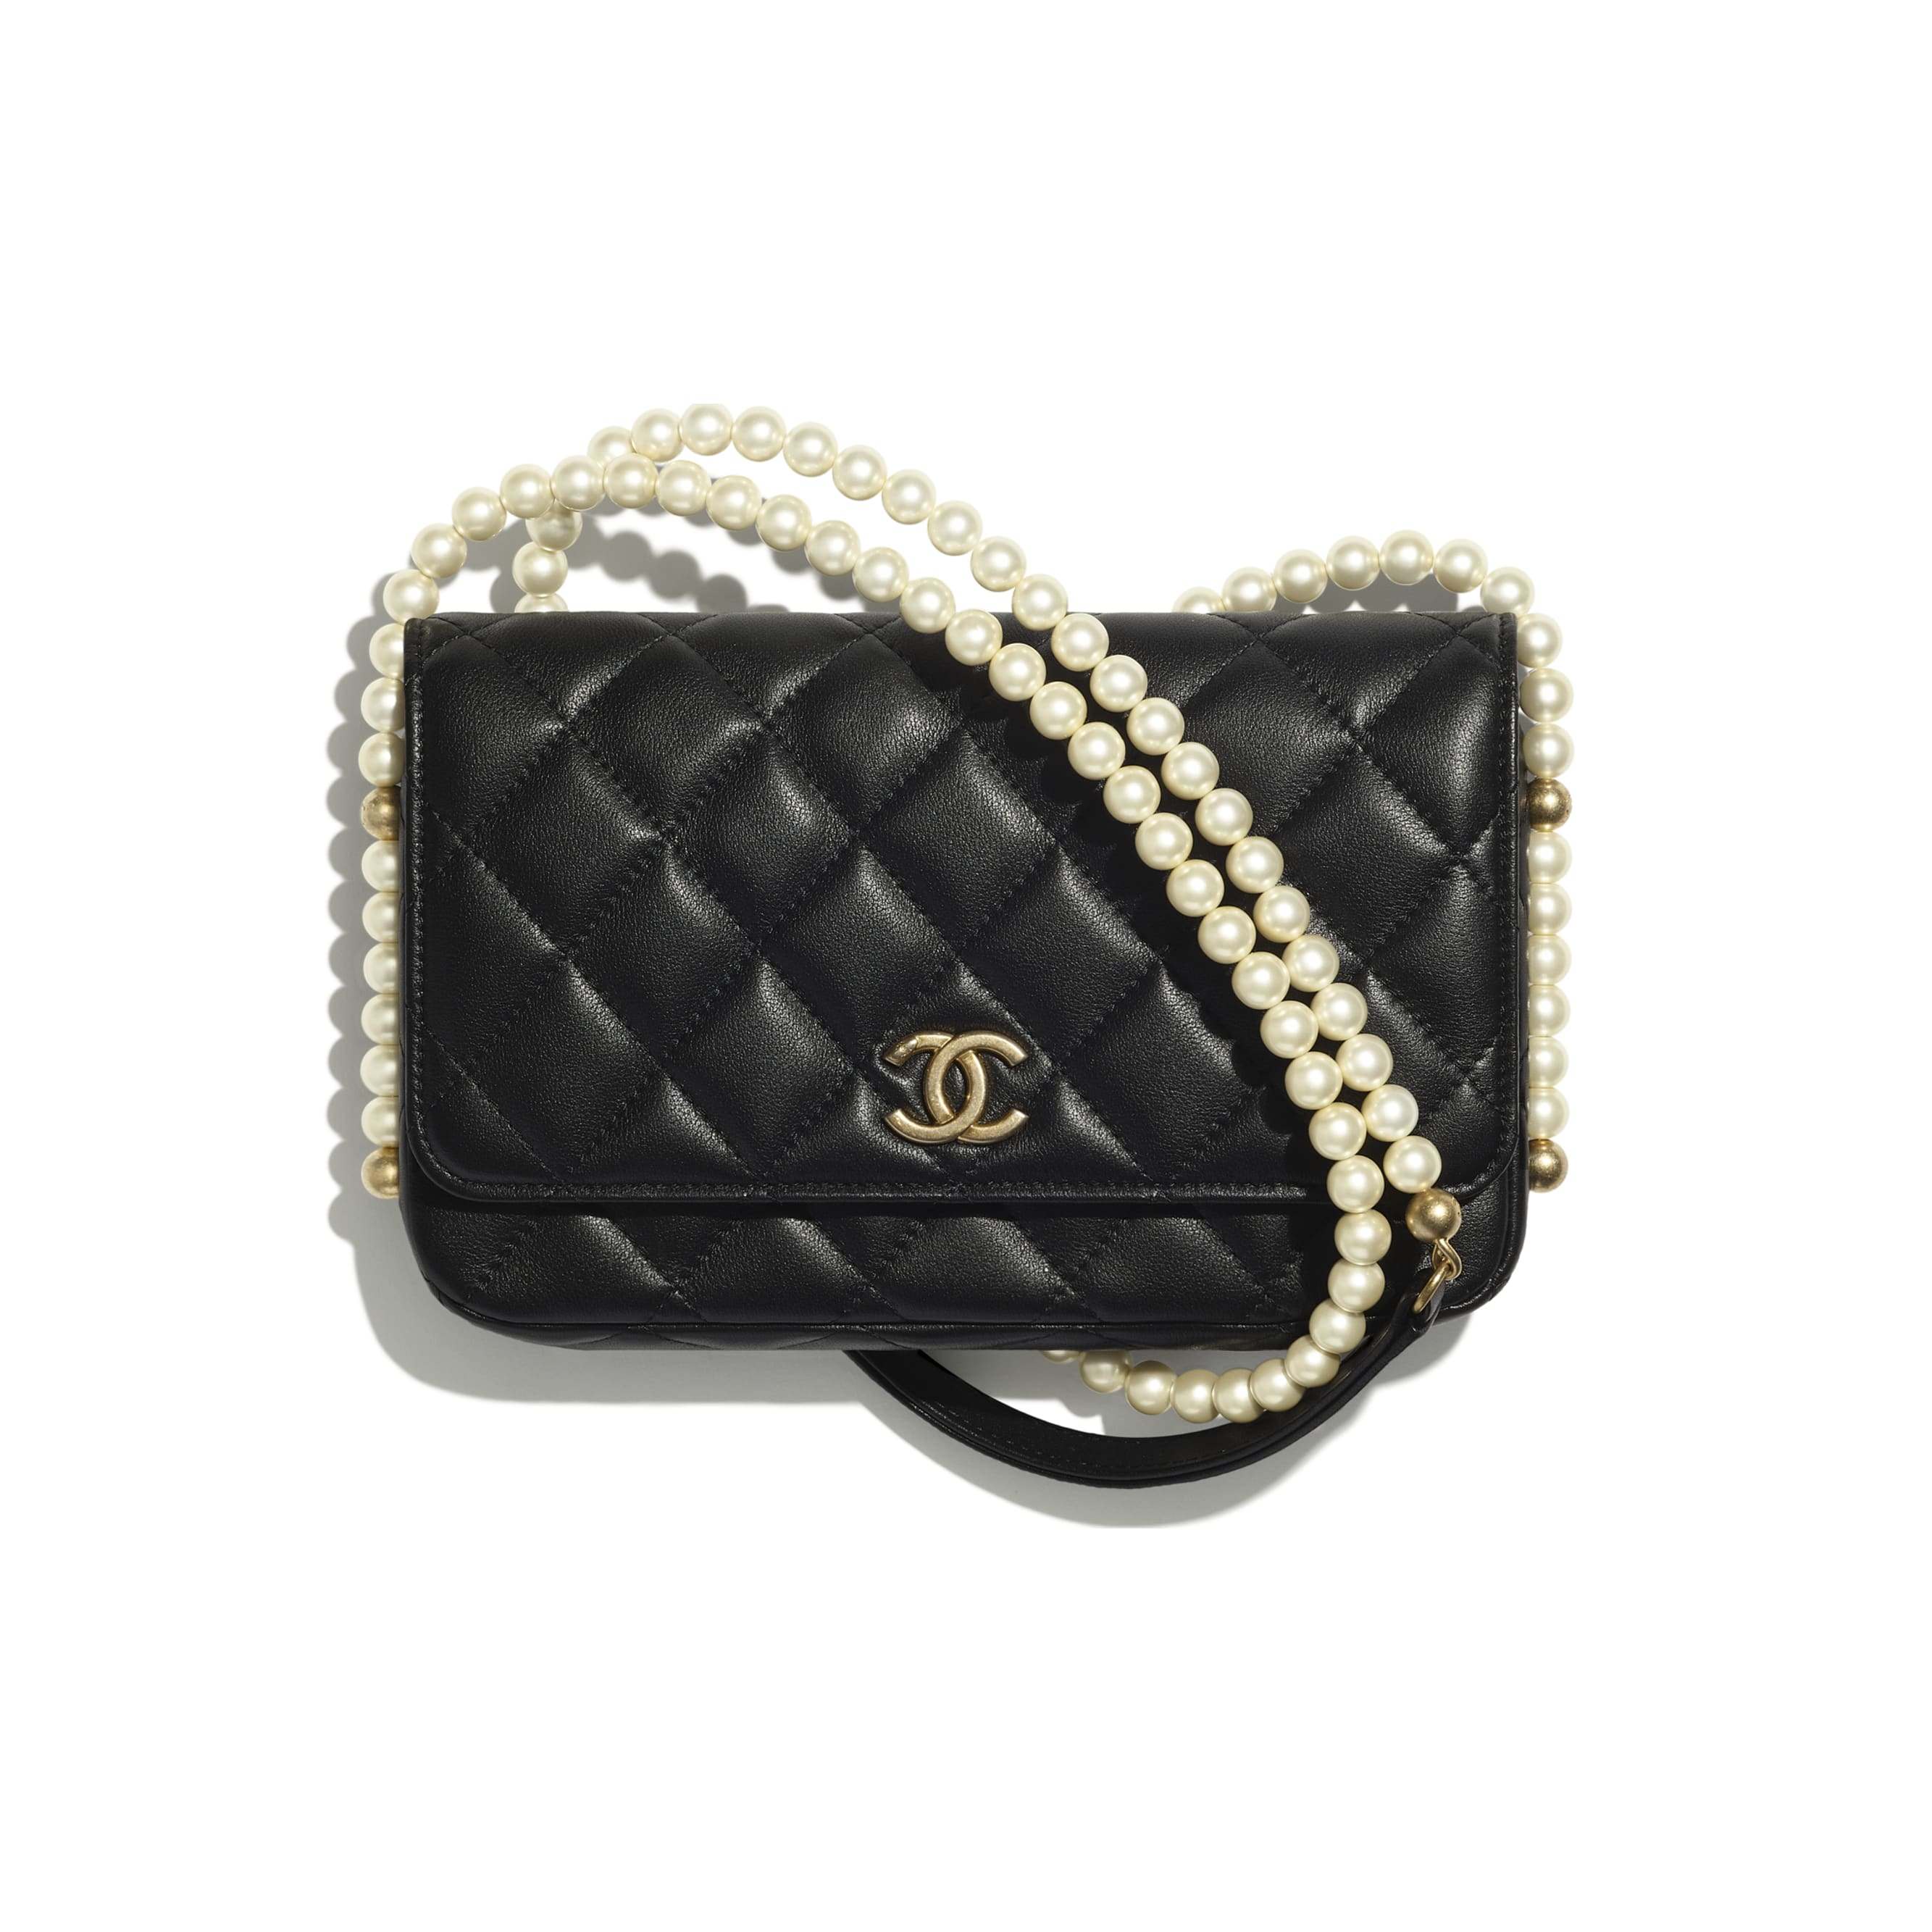 Wallet On Chain - Black - Calfskin, Imitation Pearls & Gold-Tone Metal - CHANEL - Default view - see standard sized version